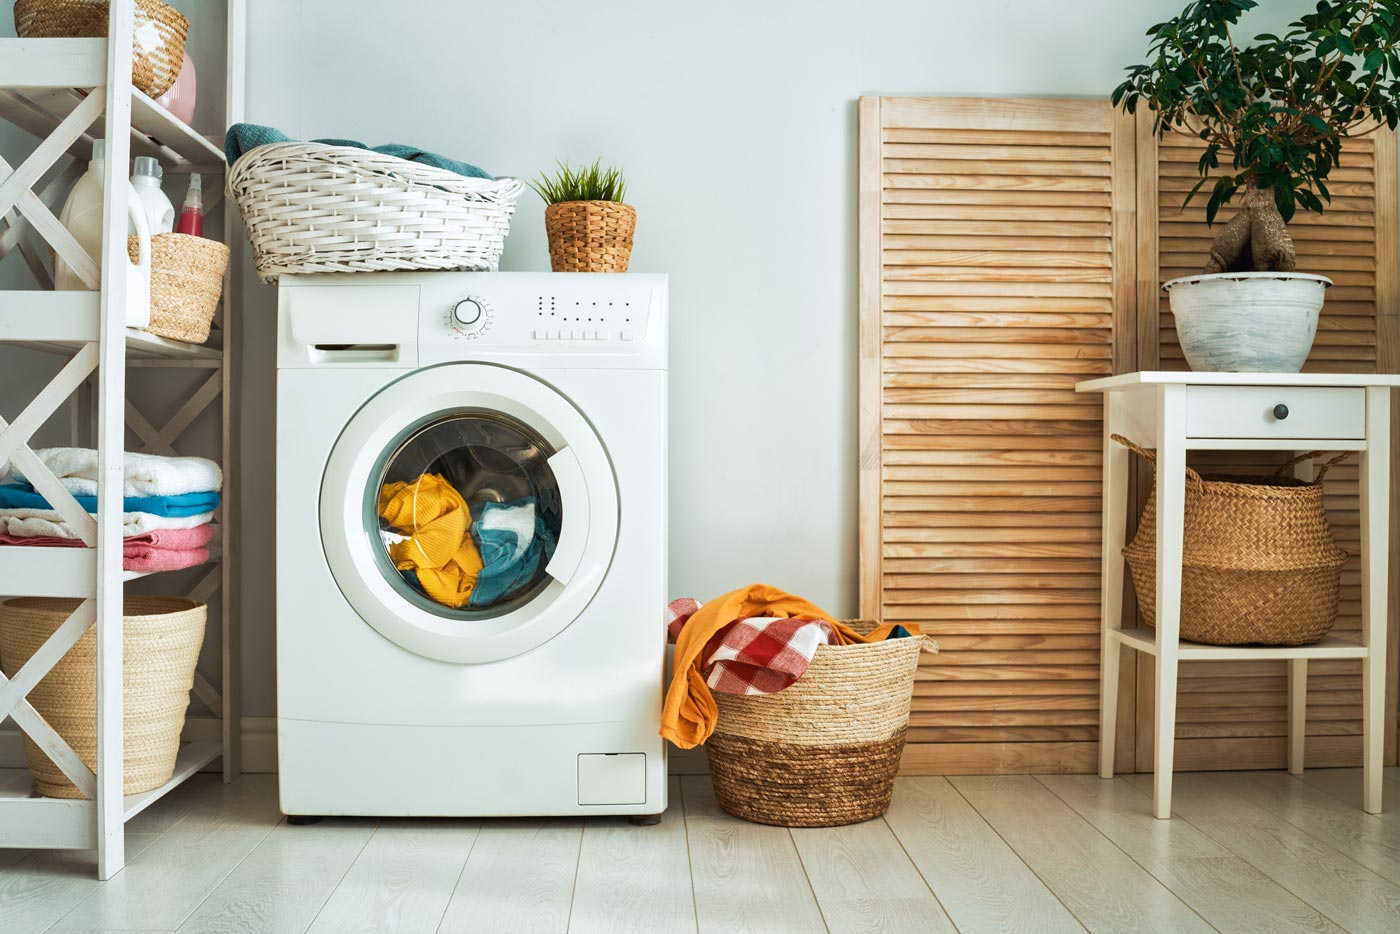 A washing machine sits full of laundry and conspicously absent is the dryer.